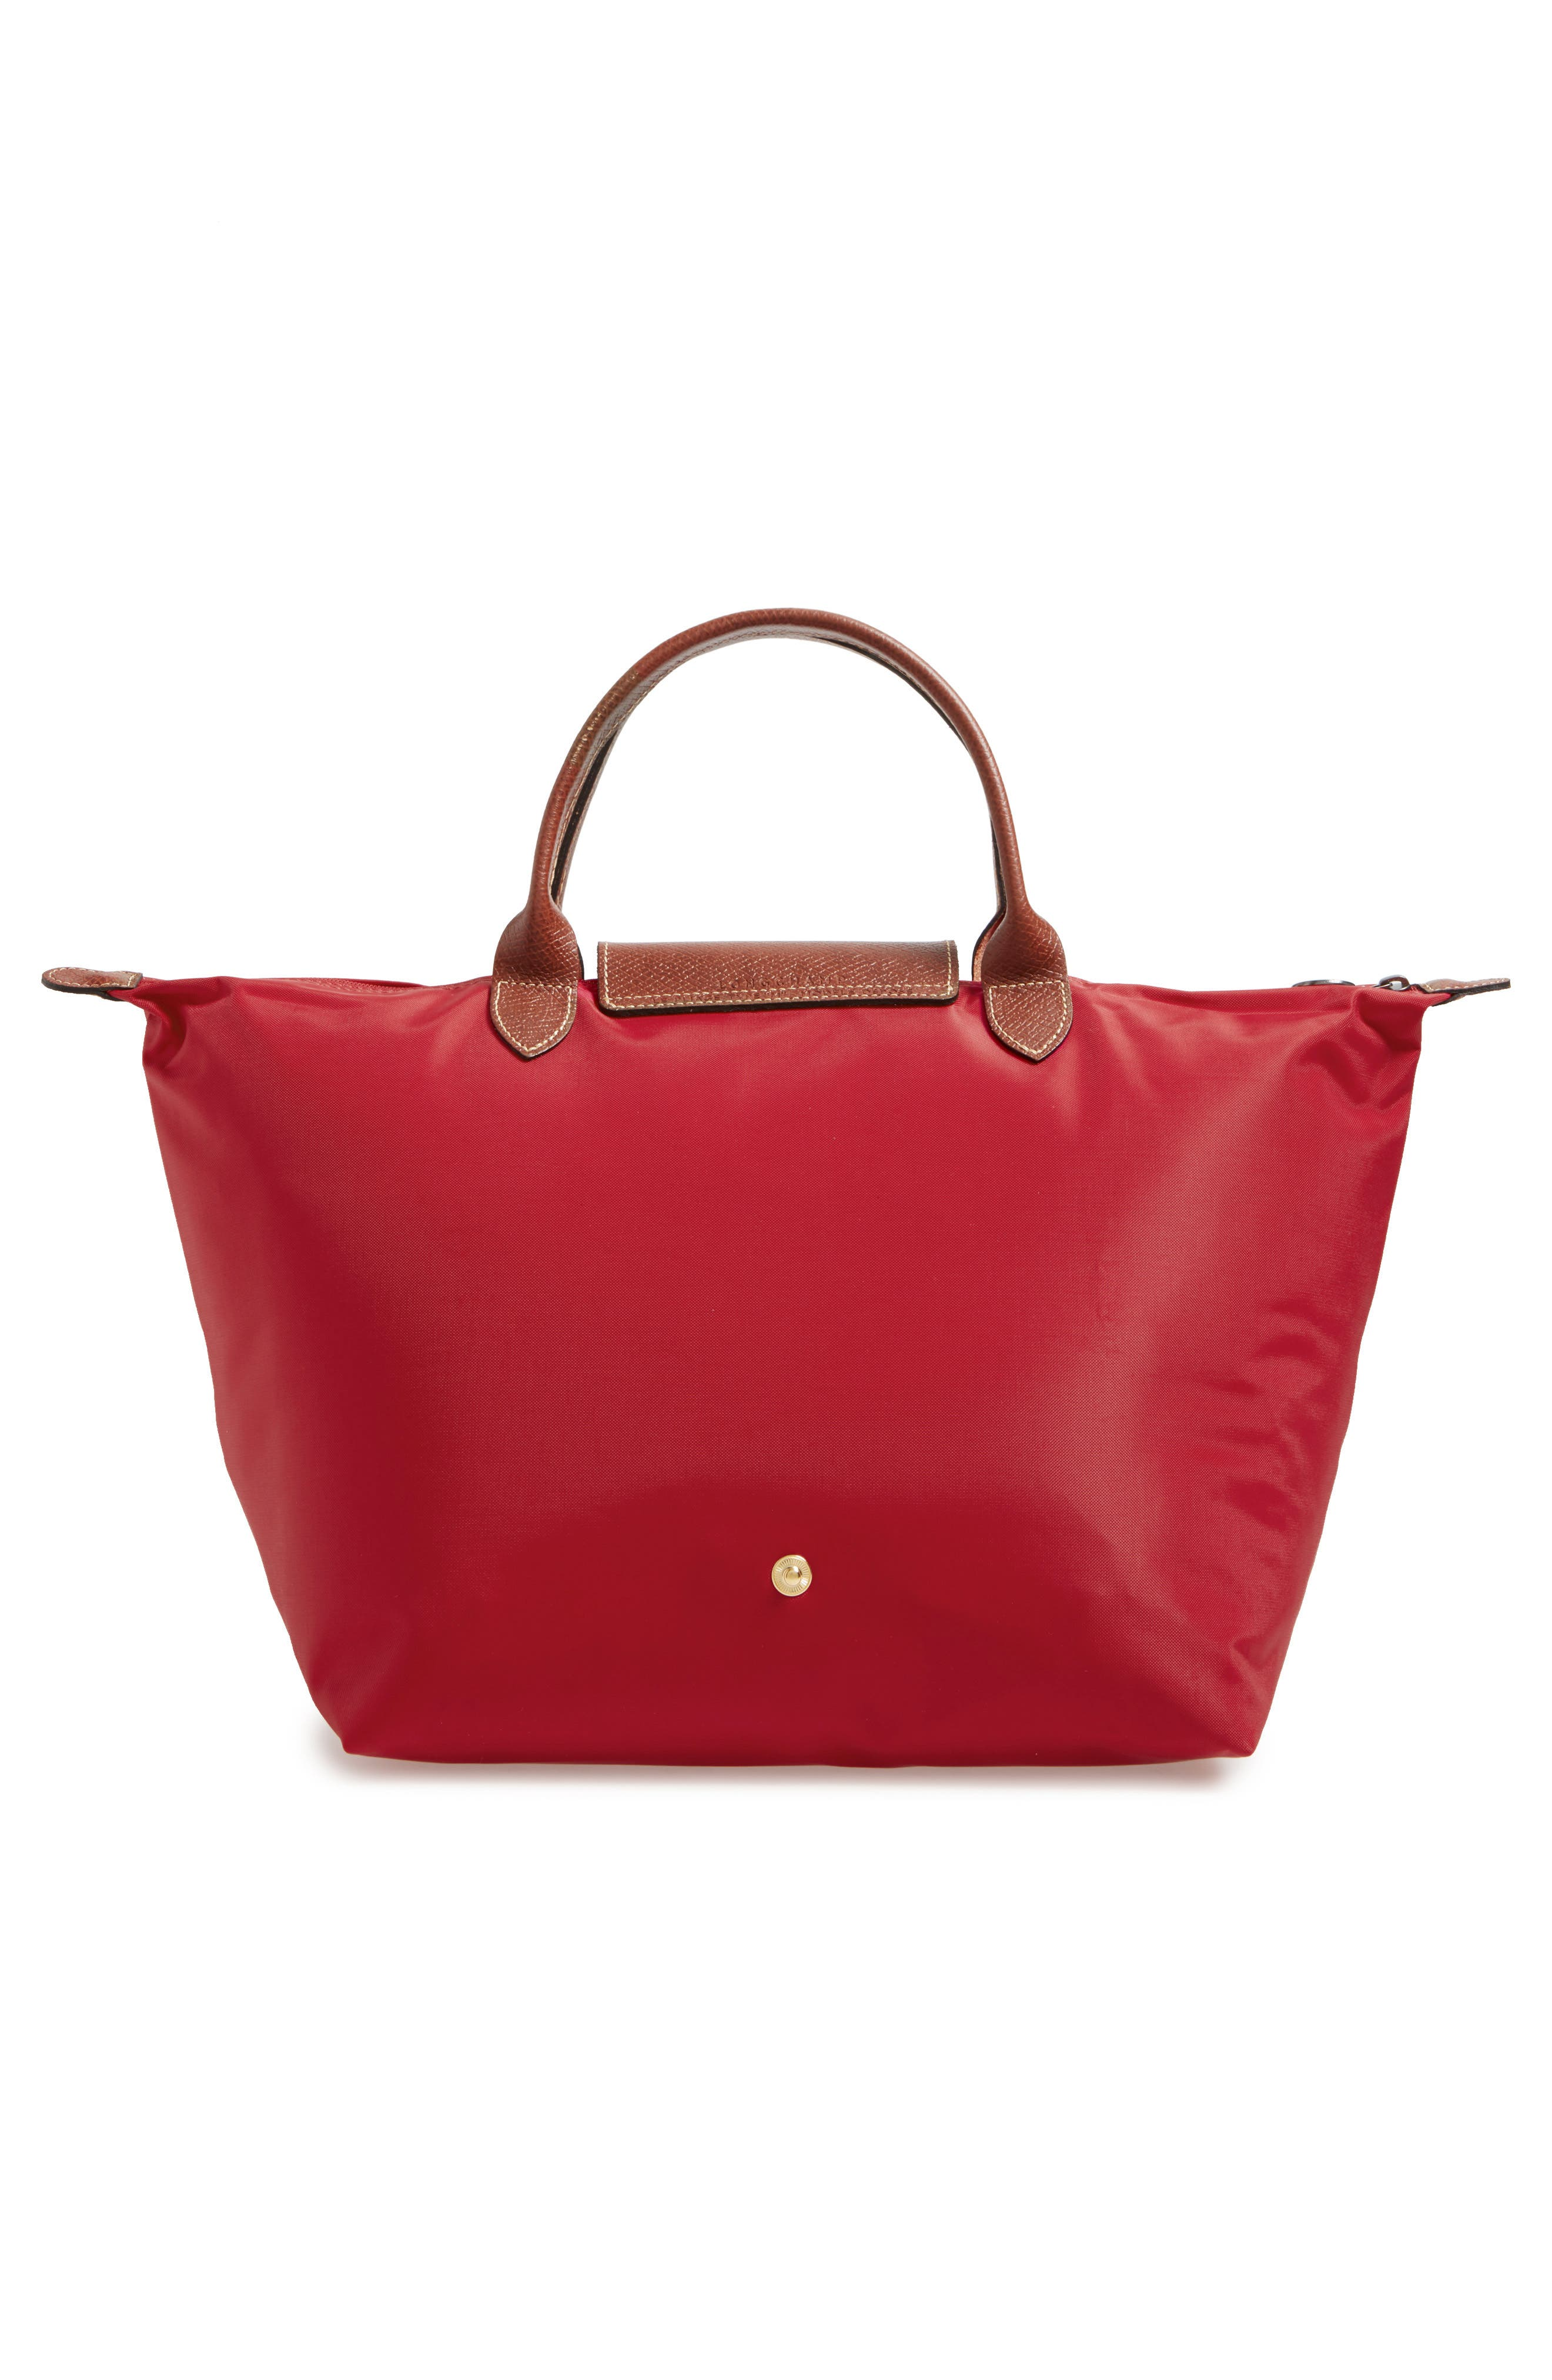 'Medium Le Pliage' Top Handle Tote,                             Alternate thumbnail 3, color,                             RED